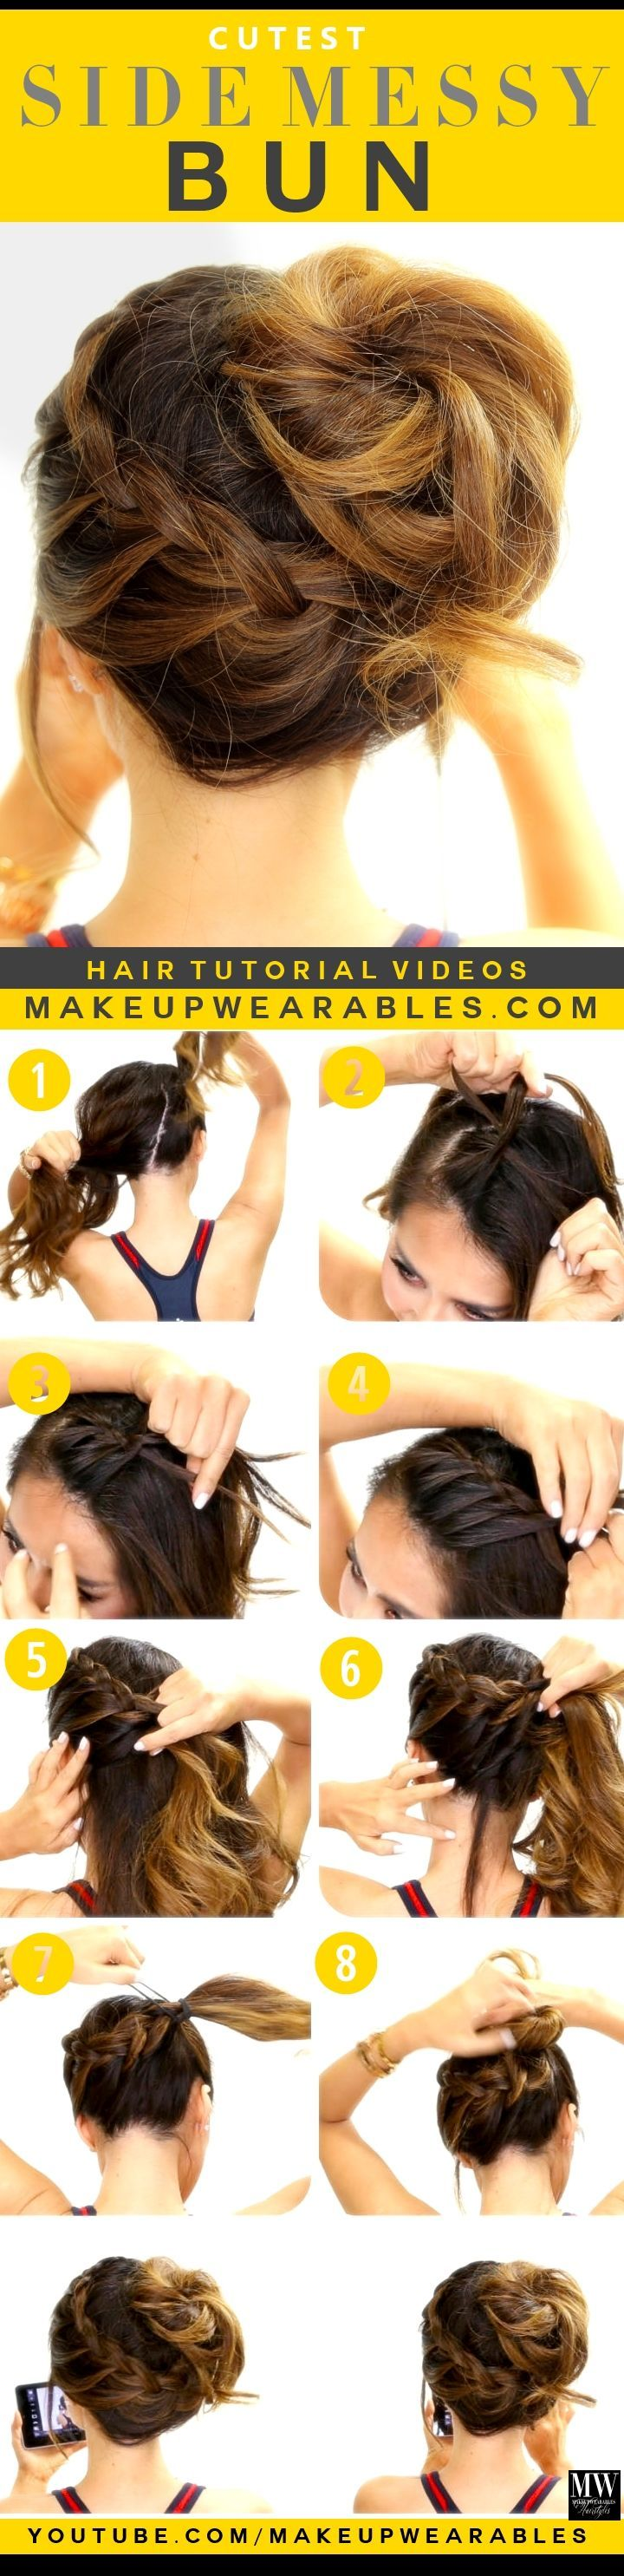 Swell 1000 Ideas About Nurse Hairstyles On Pinterest Quick Hairstyles Short Hairstyles For Black Women Fulllsitofus